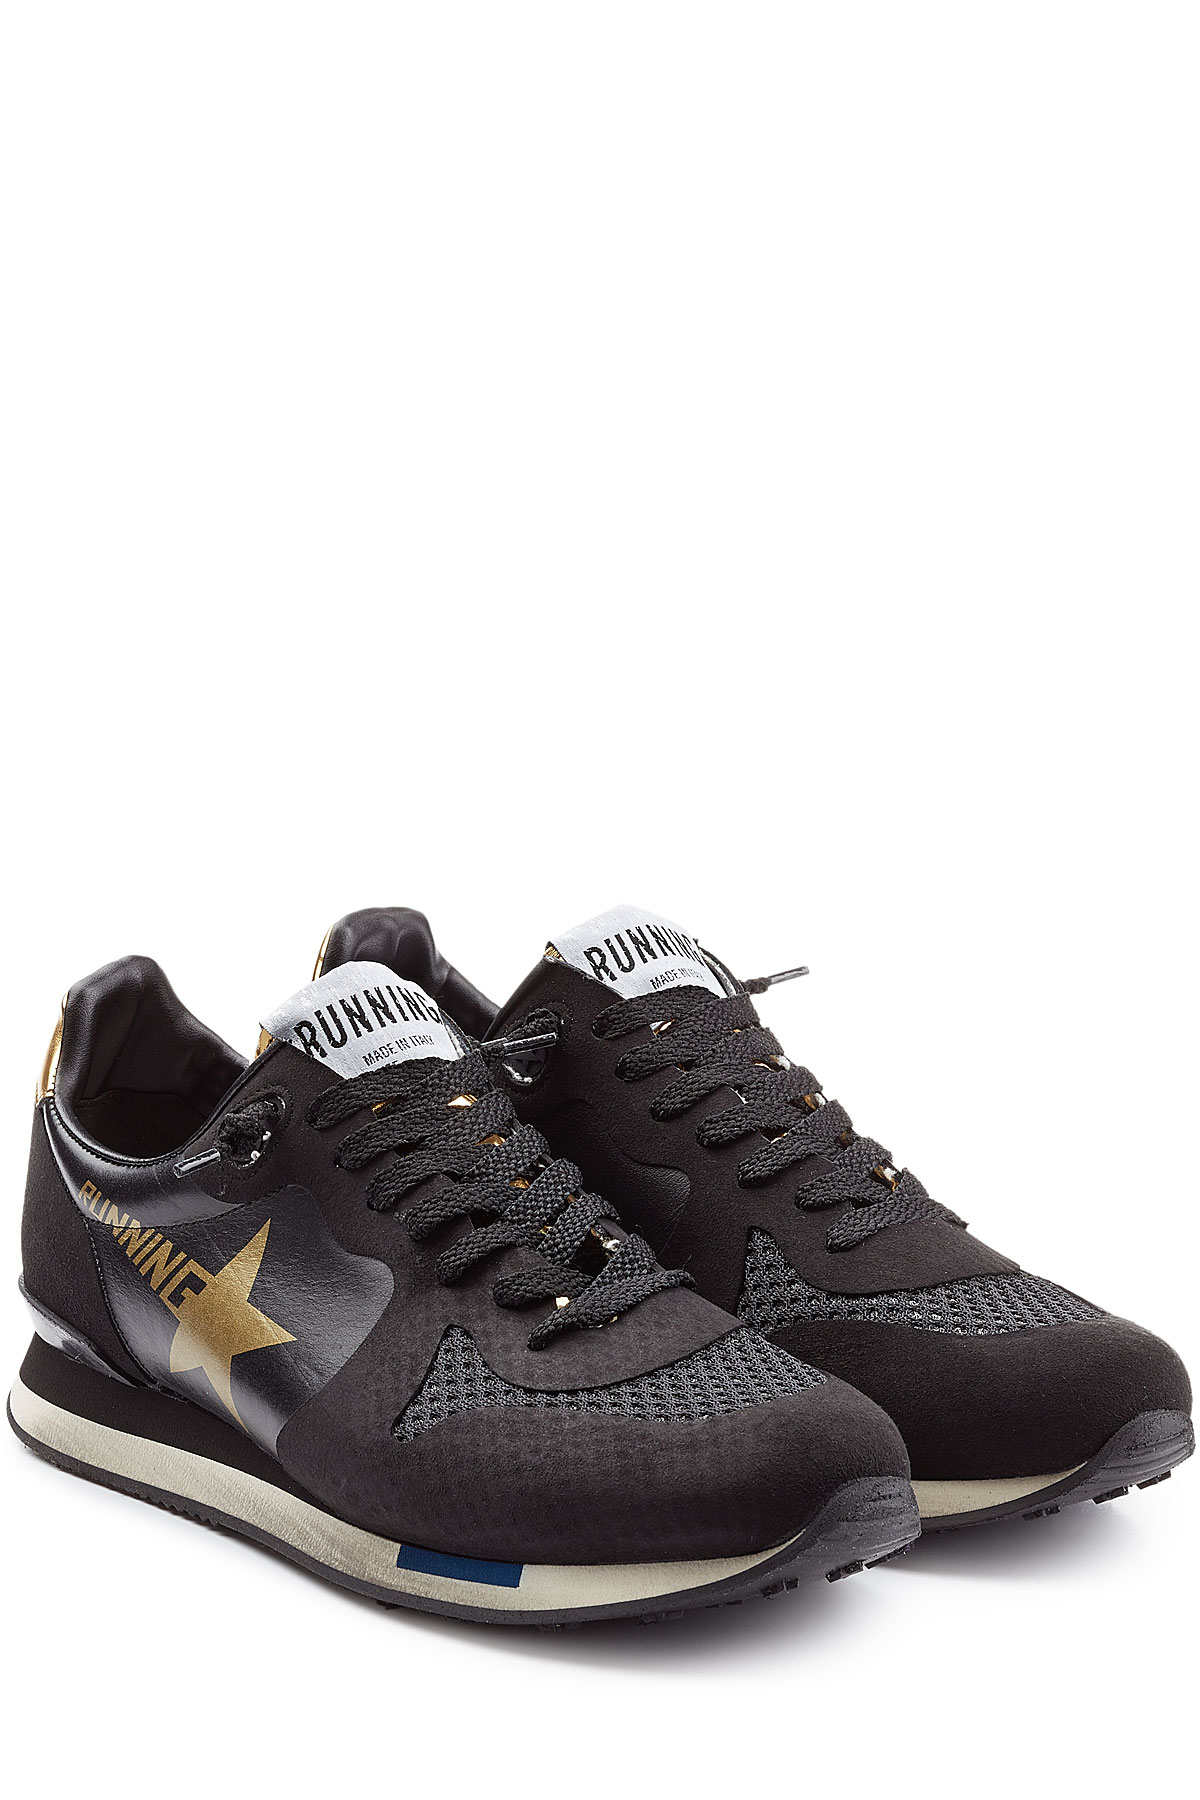 golden goose running sneakers 28 images golden goose deluxe brand running sneakers in gray. Black Bedroom Furniture Sets. Home Design Ideas